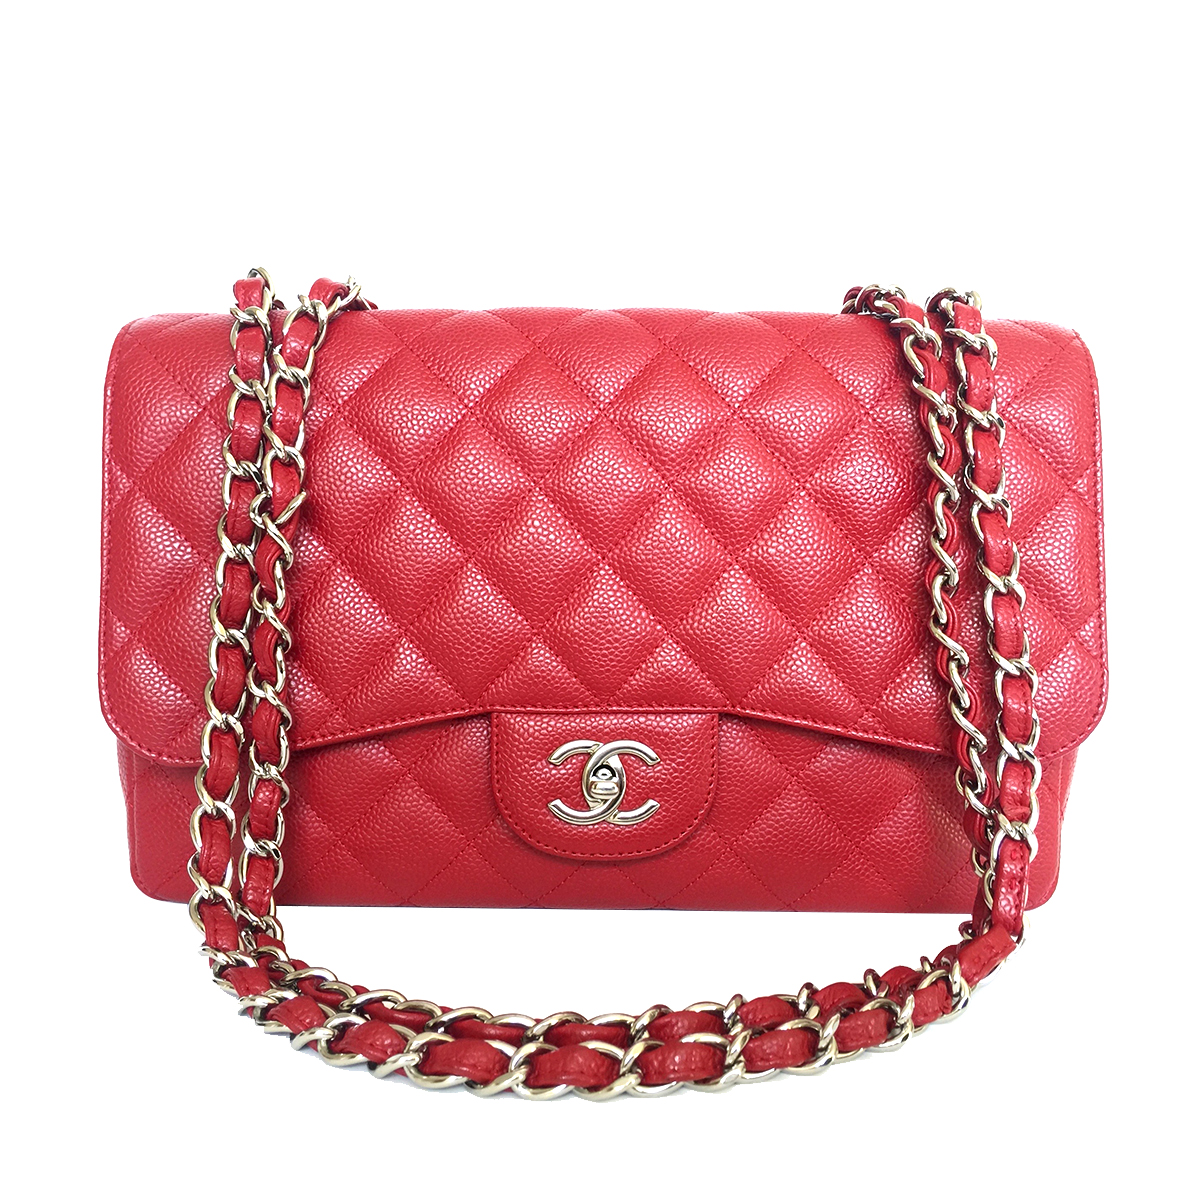 CHANEL Classic Jumbo Single Flap Red Caviar with Silver Hardware 2009 129f7a8b53